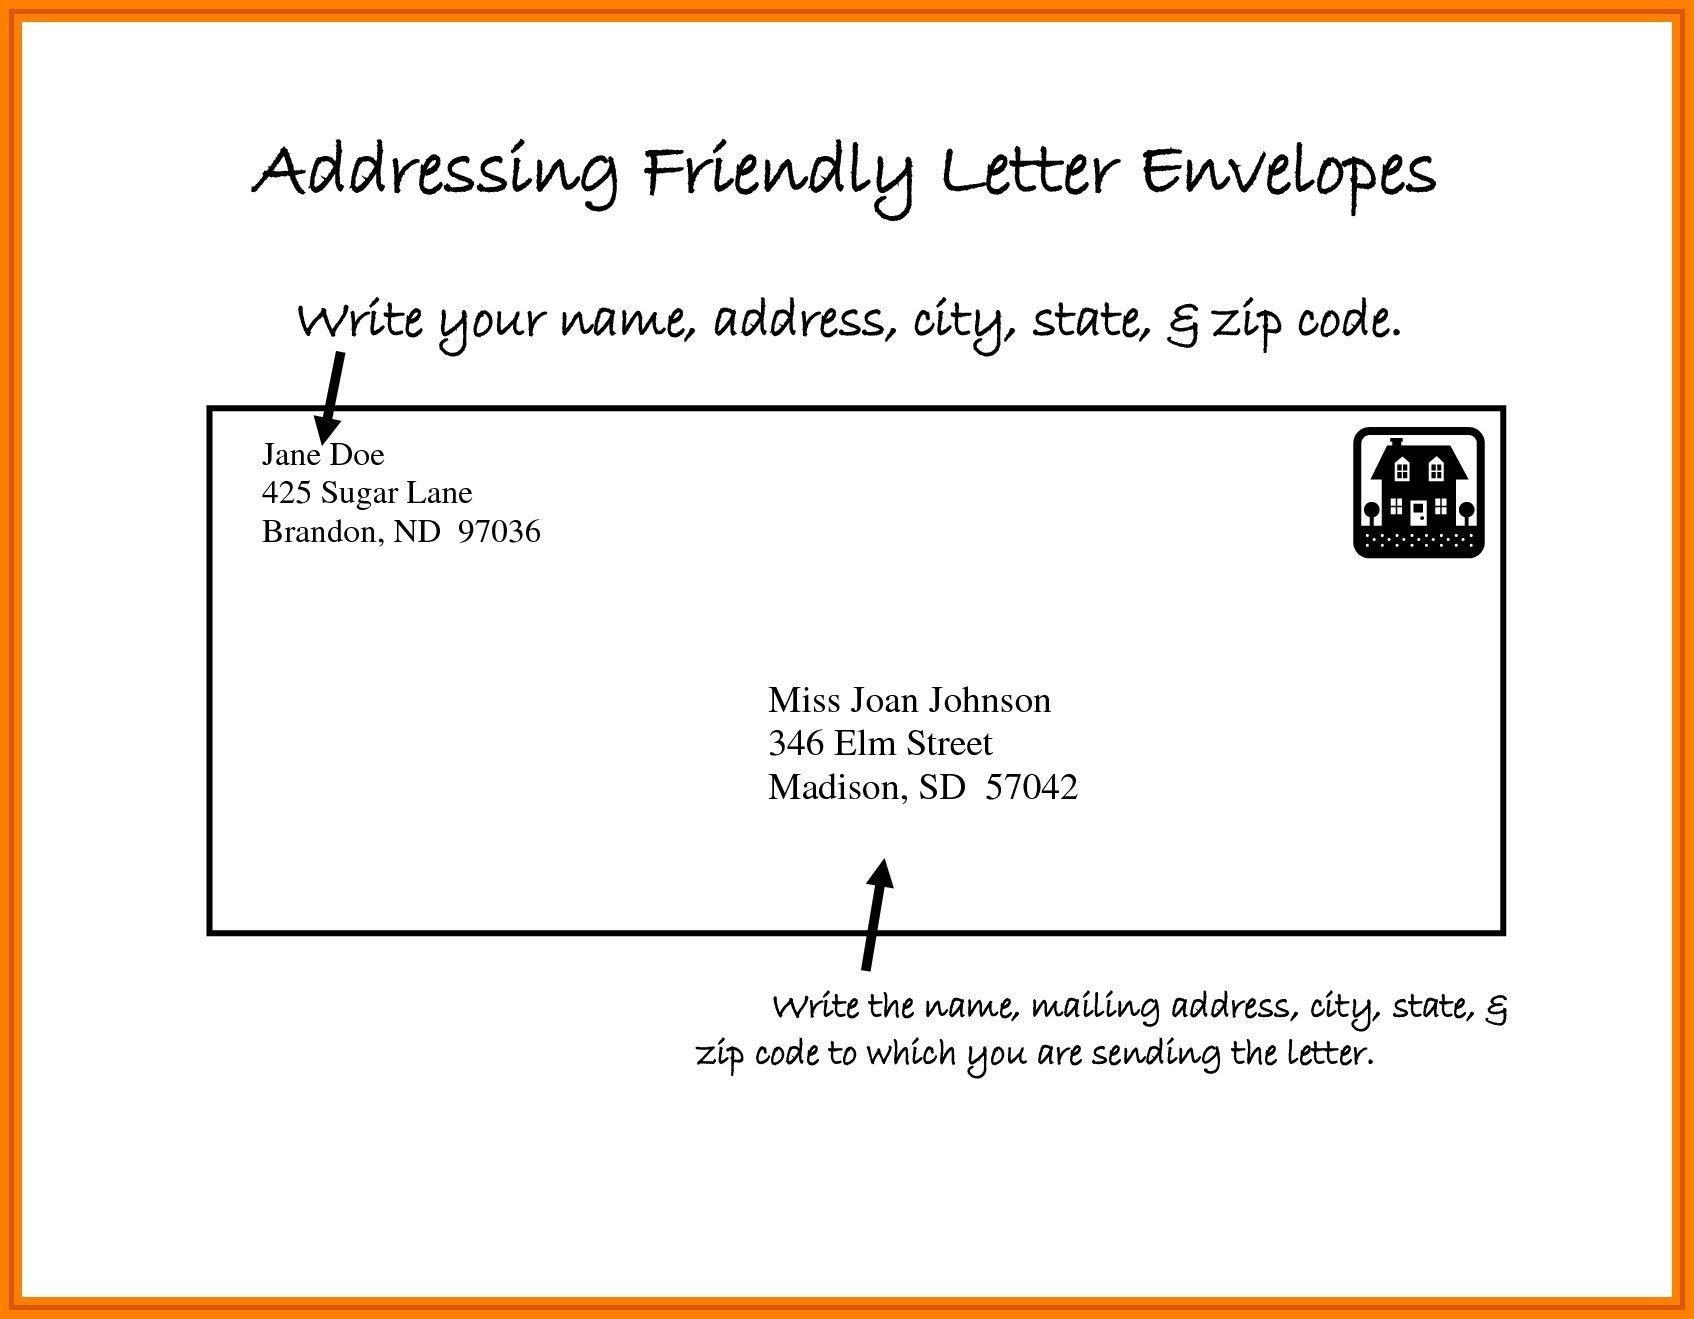 You Can See This New Business Letter Envelope format Example At